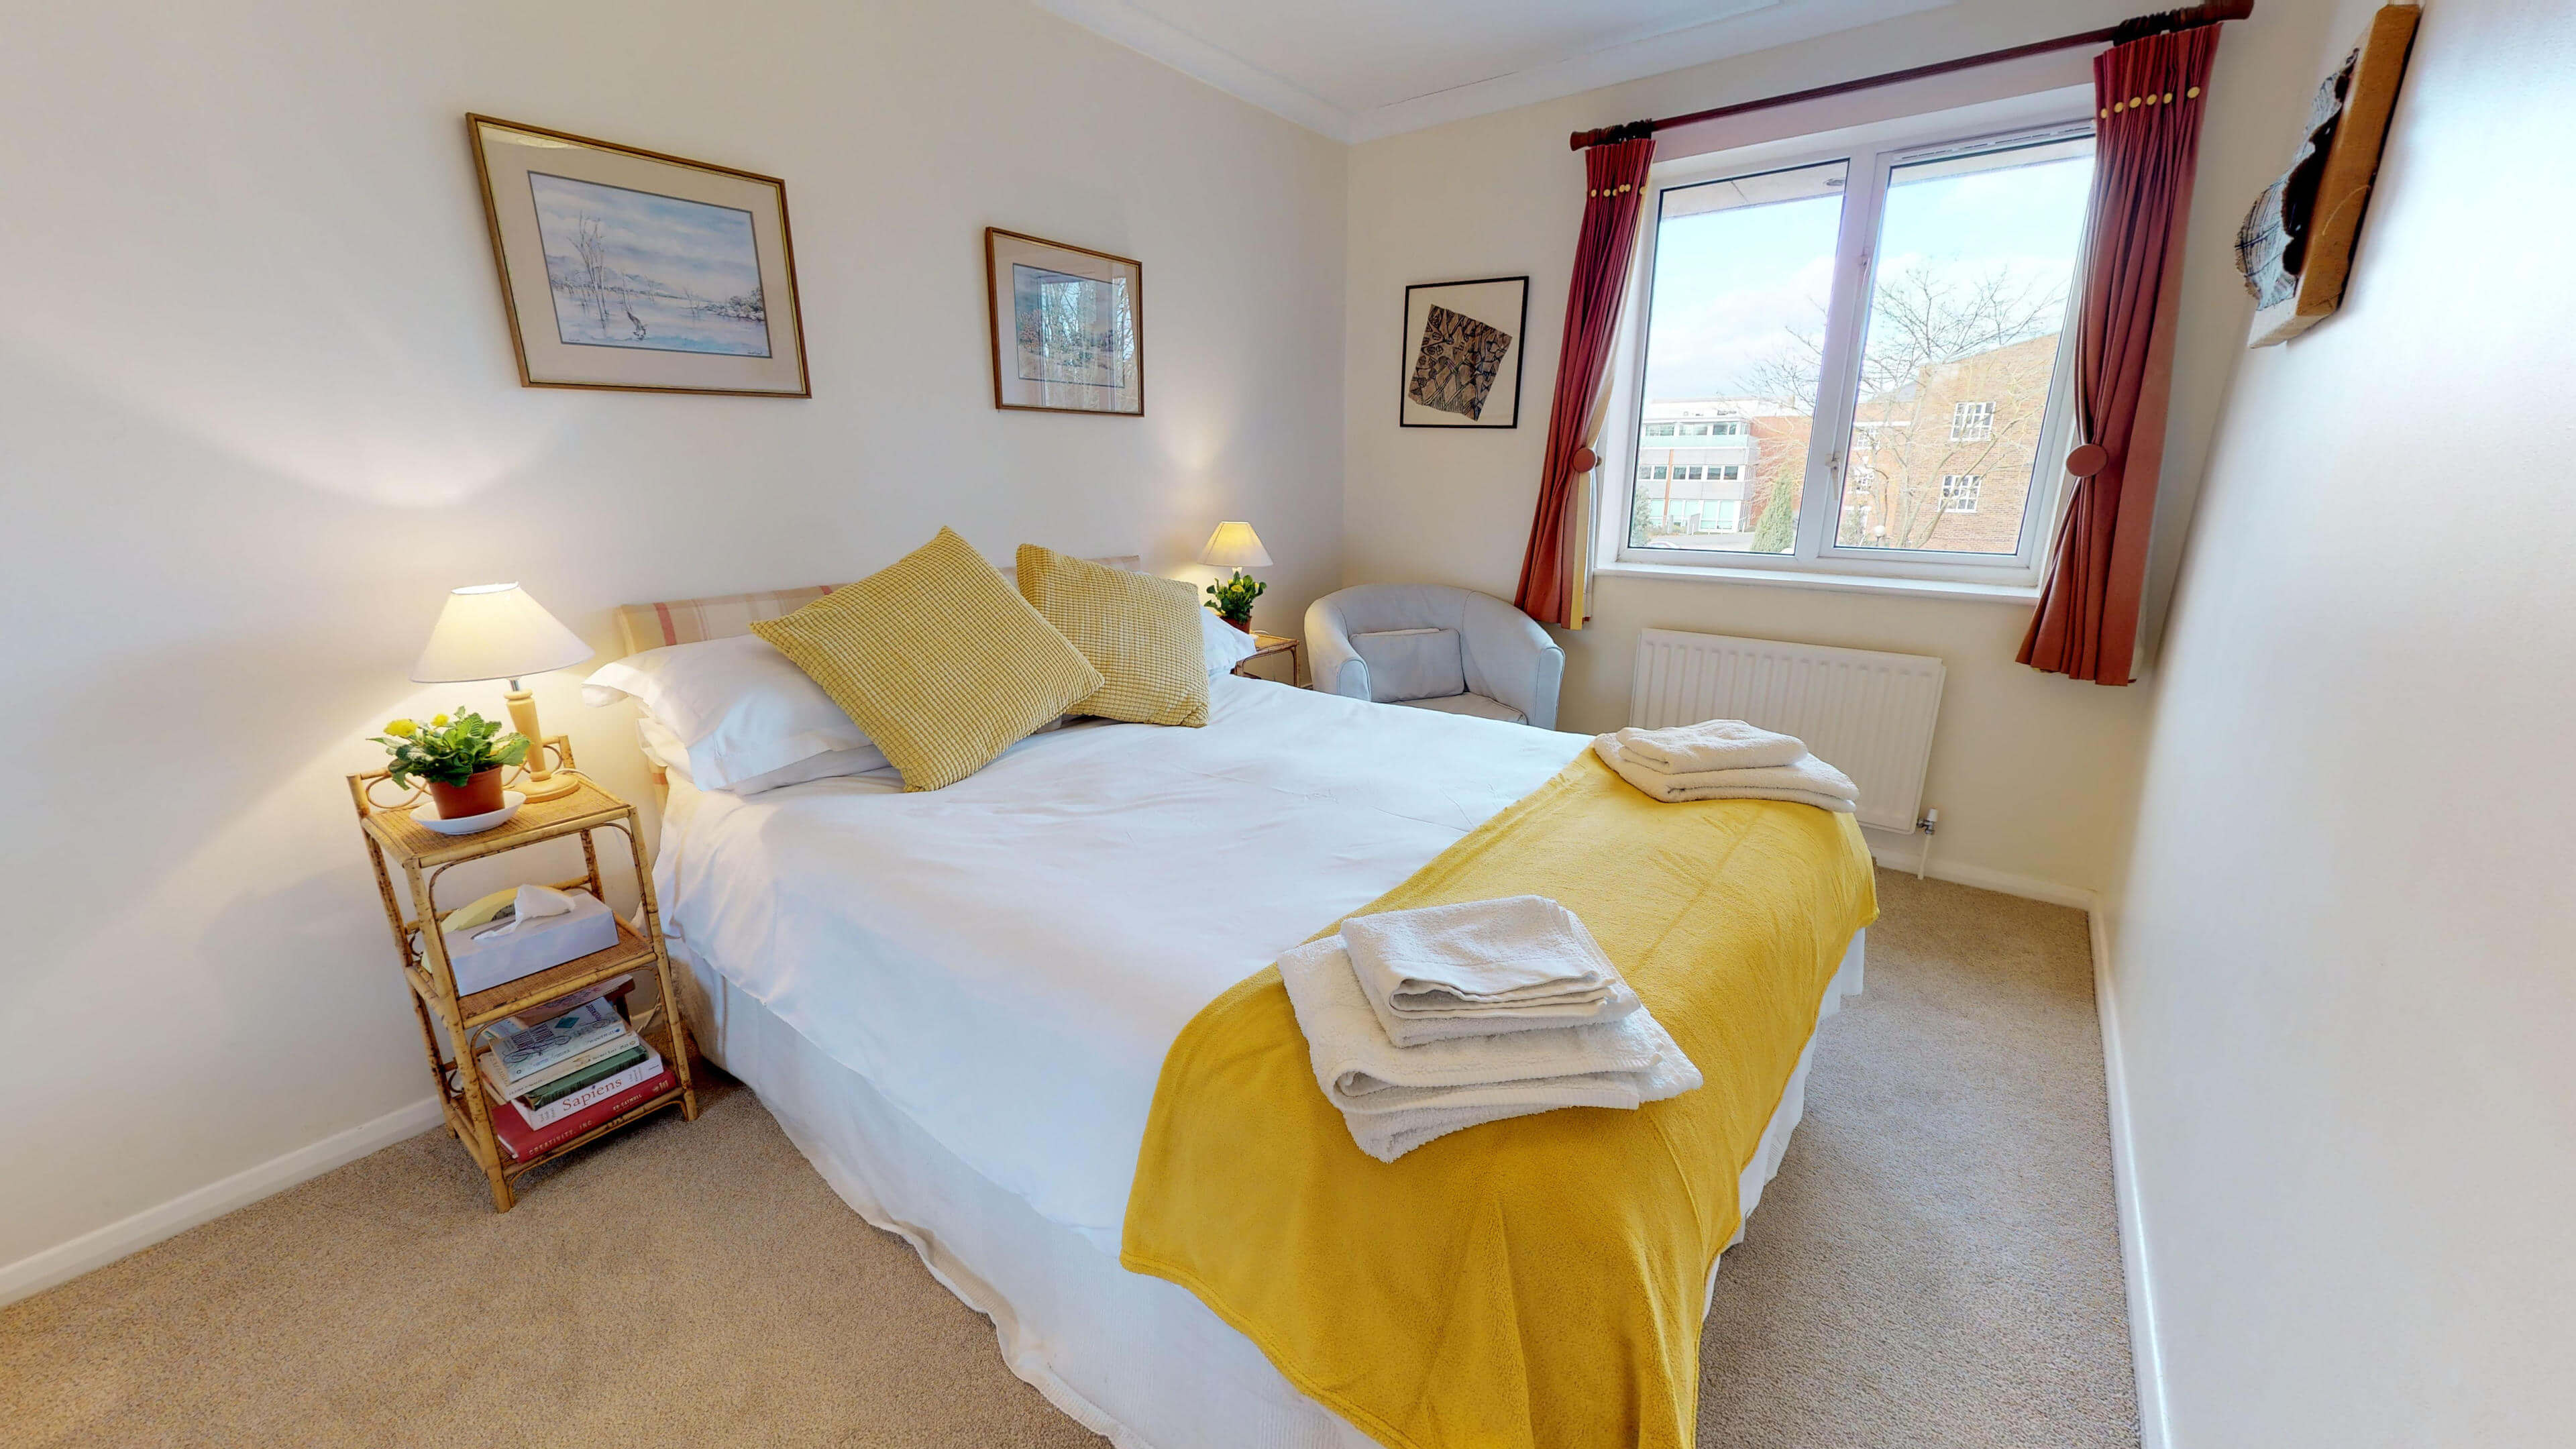 Millbank Oxford City Centre Short Stay Apartment Sleeps 4 Double Bedroom